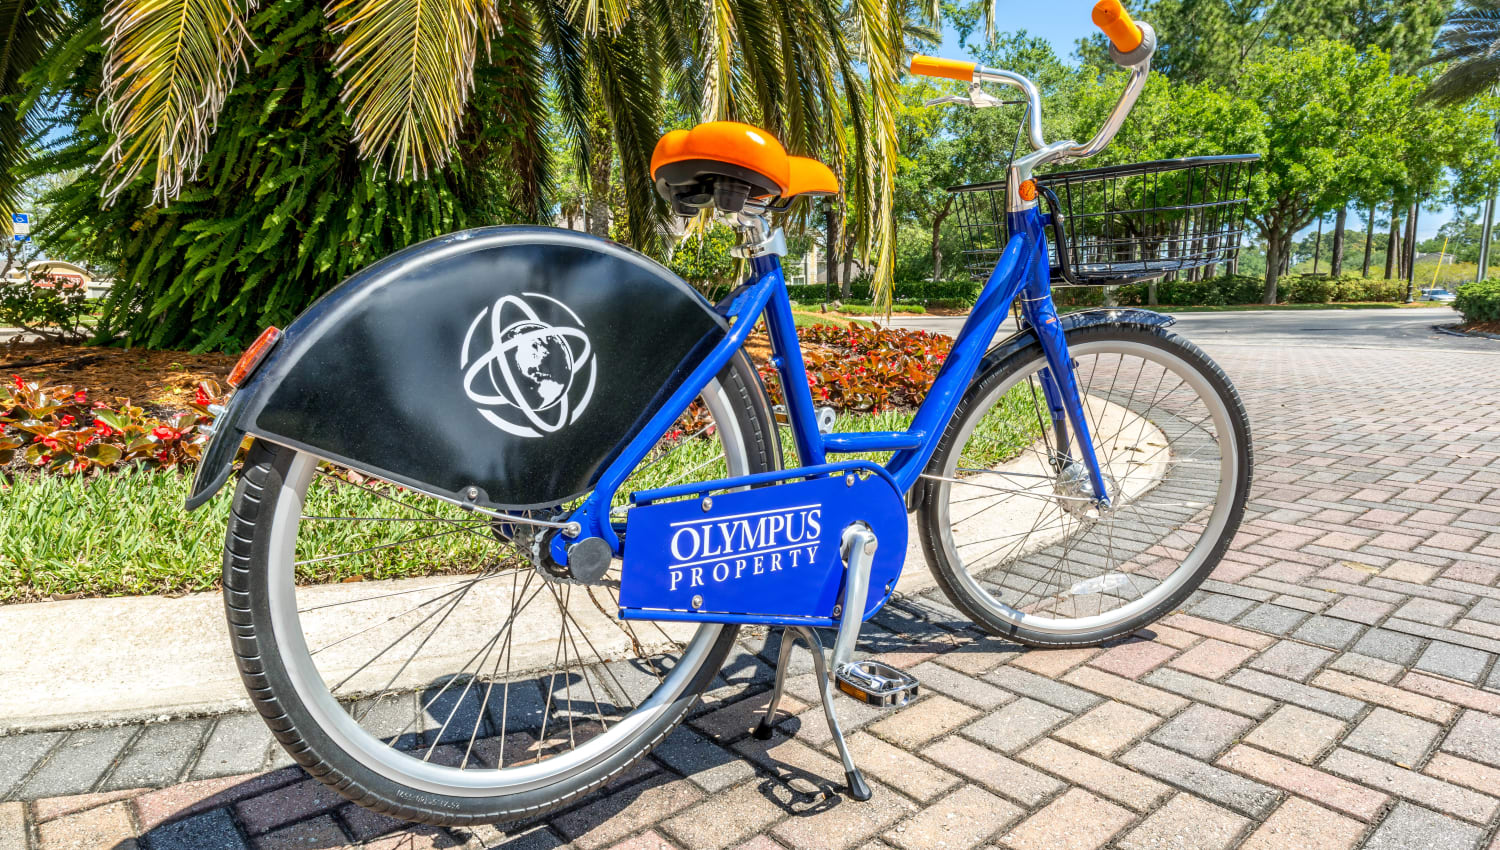 Bikes available for resident use around the community at Cape House in Jacksonville, Florida